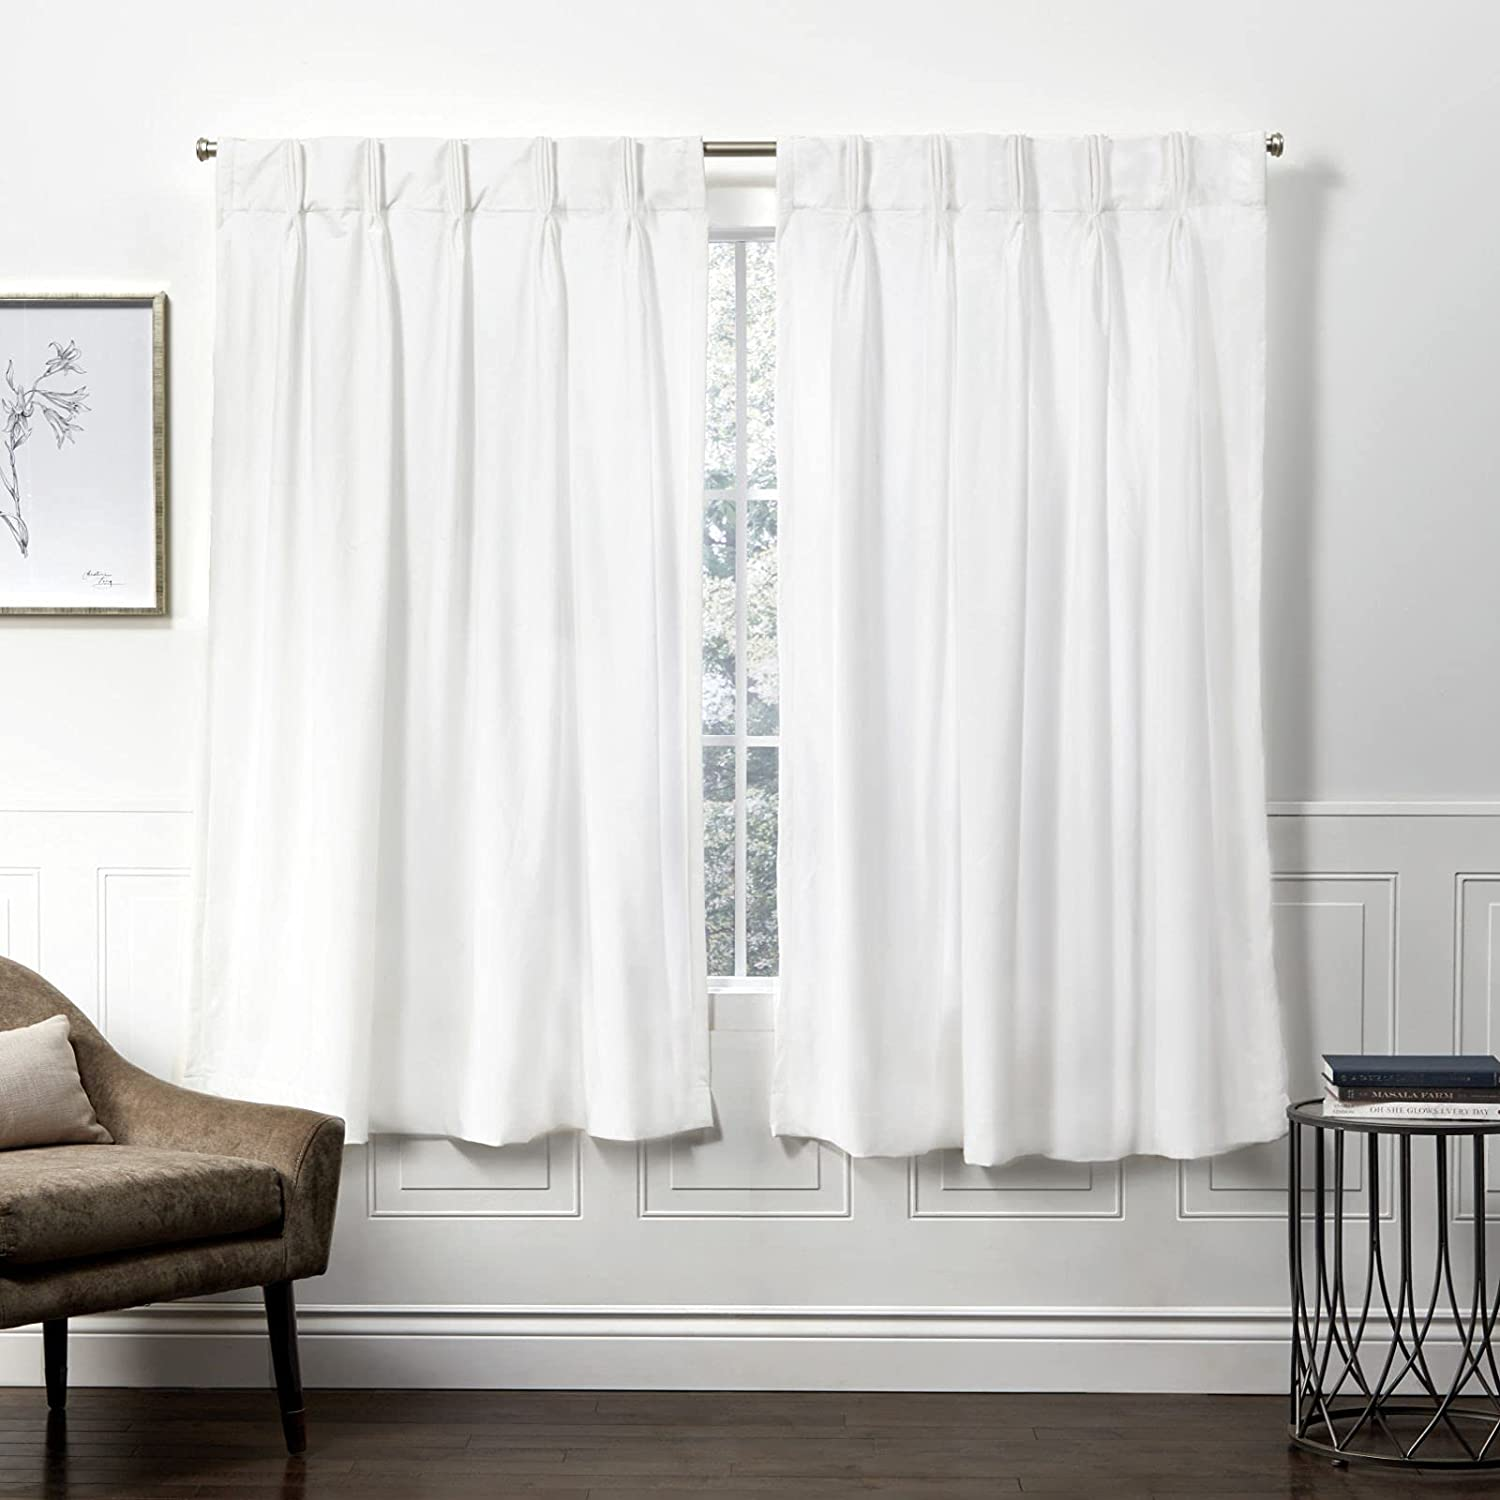 Exclusive Home Curtains Velvet Ranking TOP18 Pinch Year-end annual account Panel 52x63 Curtain Pleat